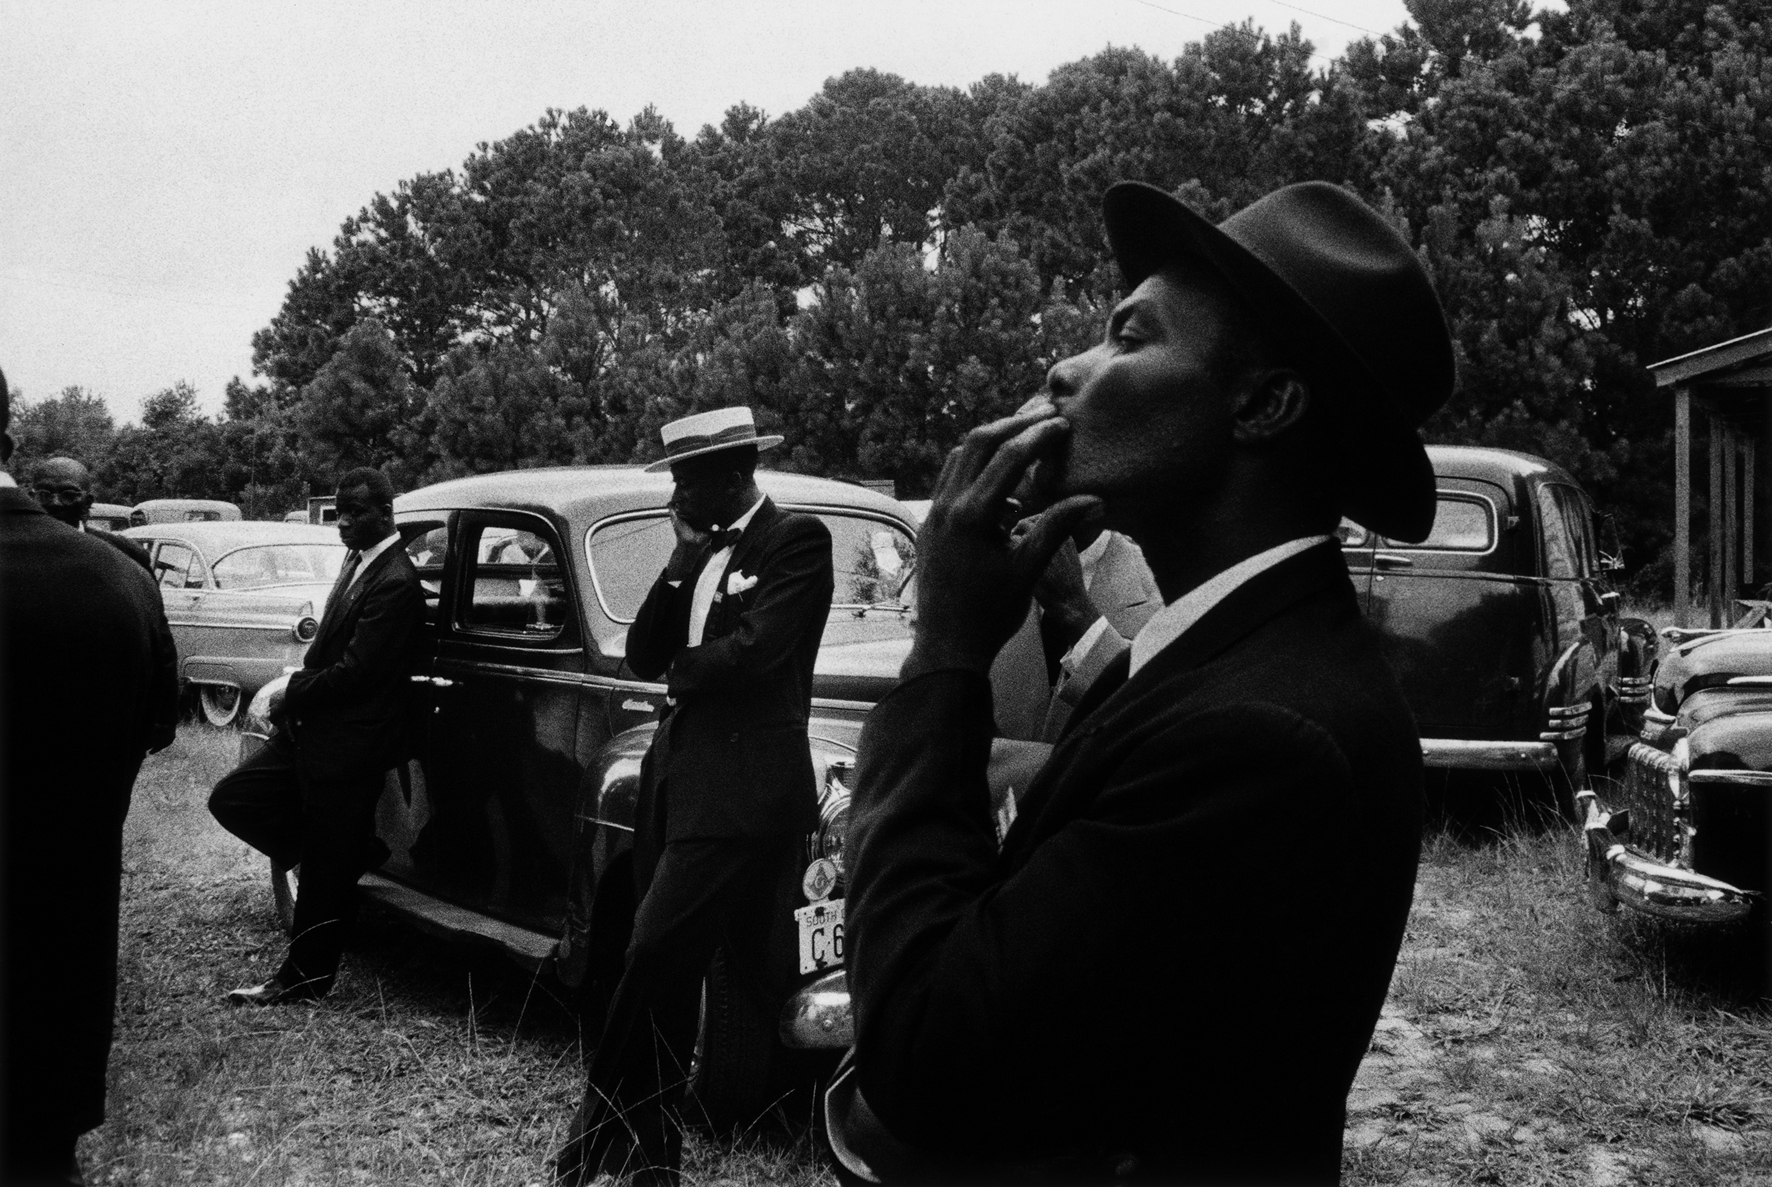 Robert Frank - Funerale, St. Helena South Carolina 1955